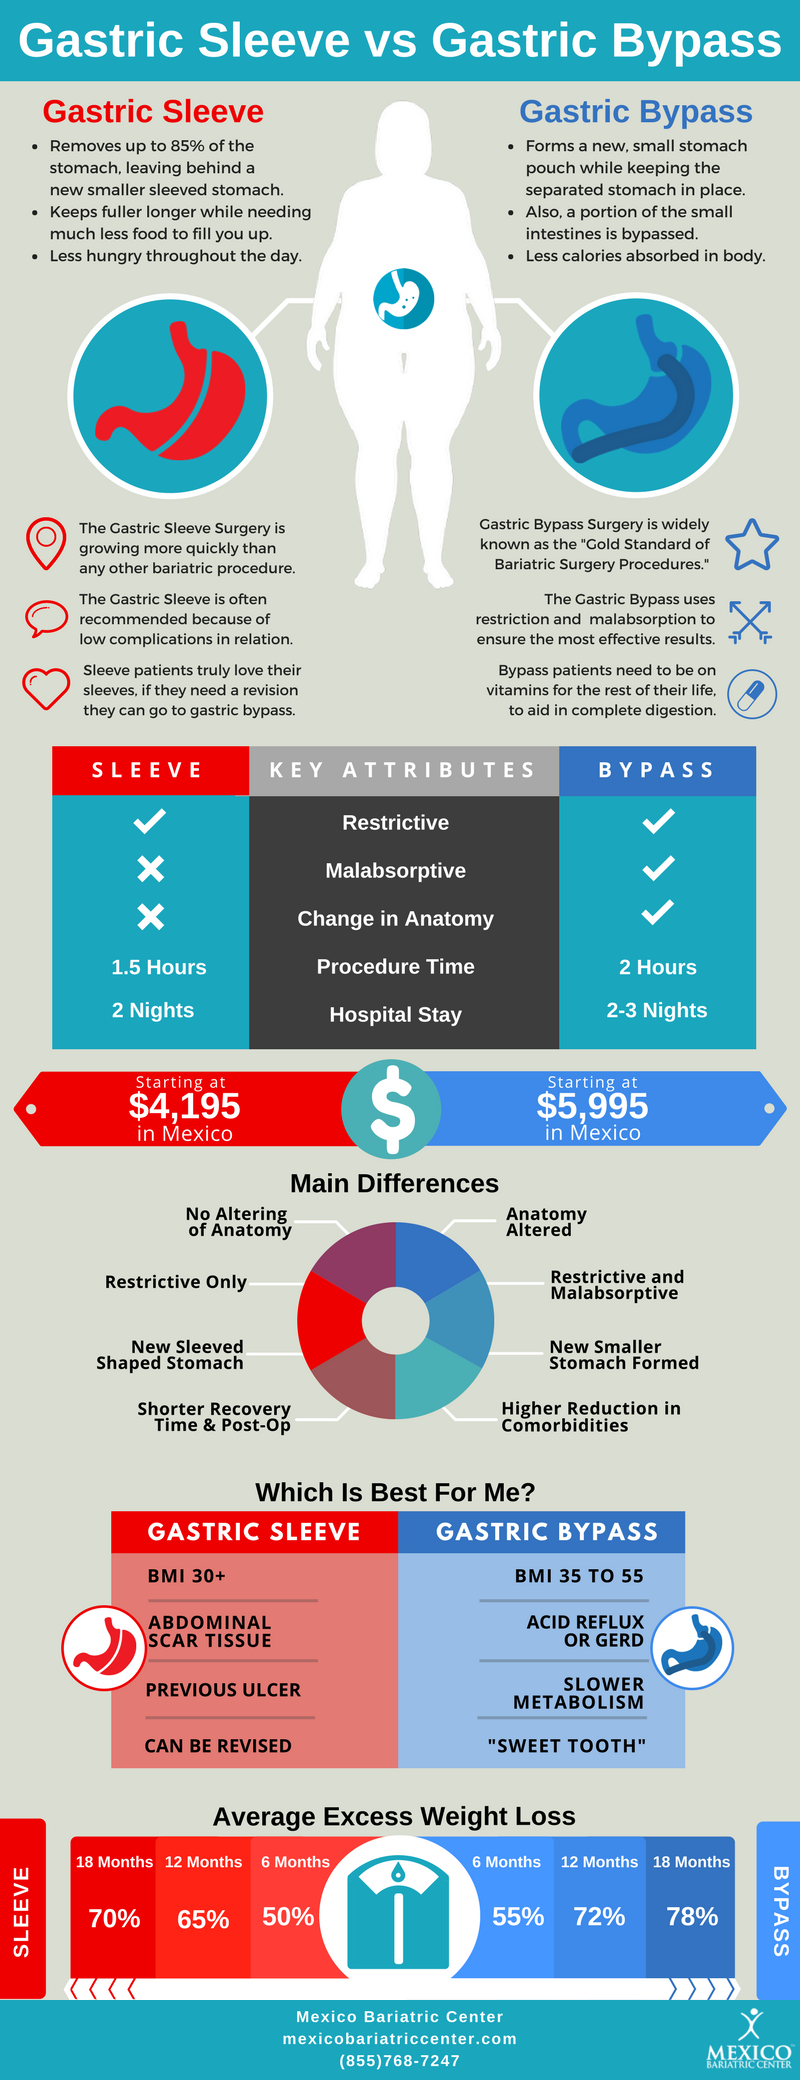 Gastric Sleeve vs Gastric Bypass Surgery Infographic